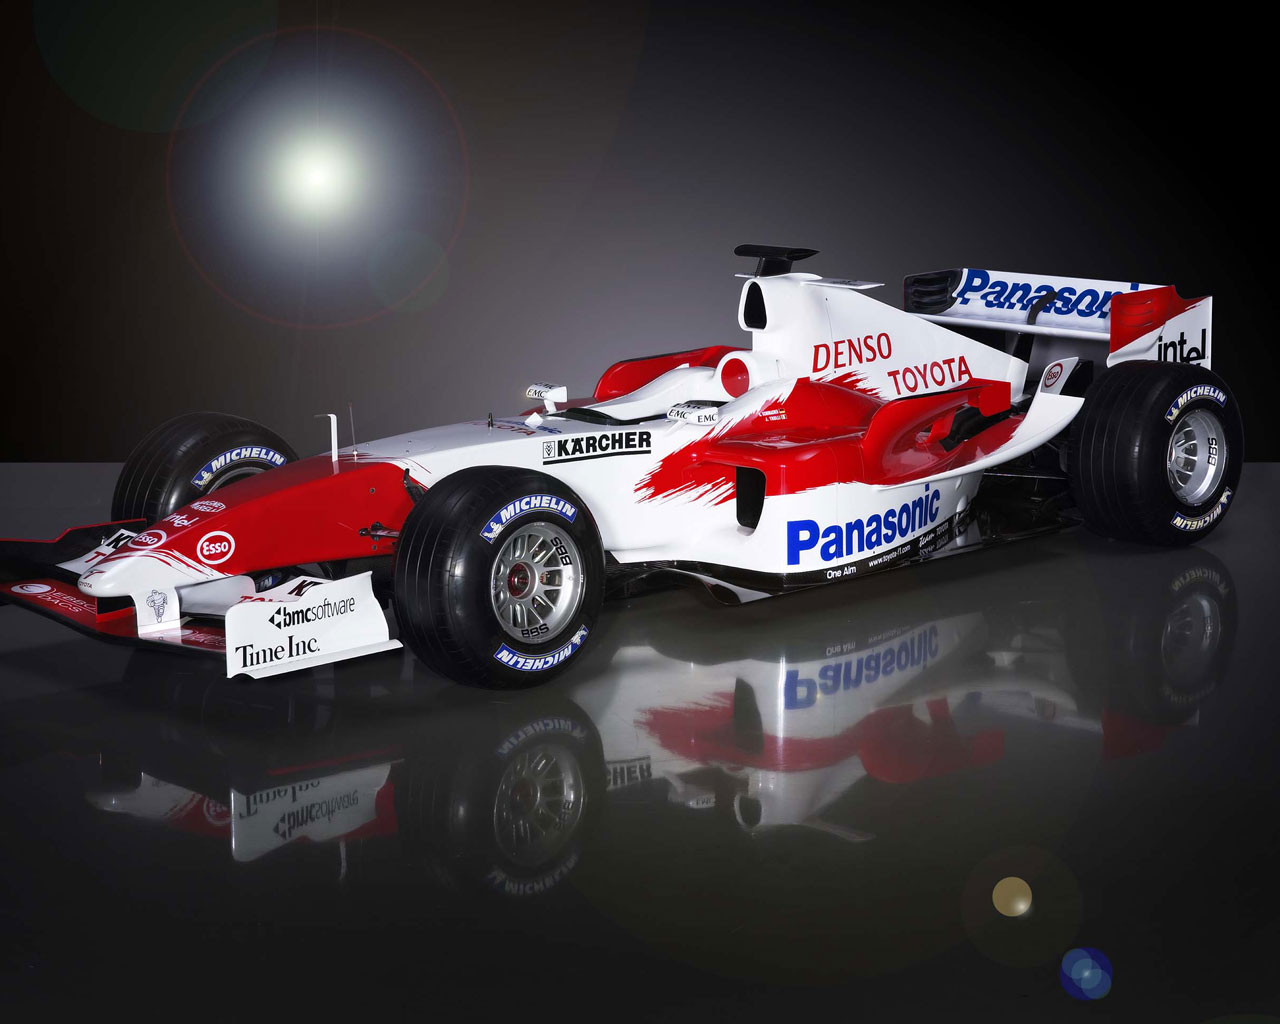 Toyota tf105 photo - 3